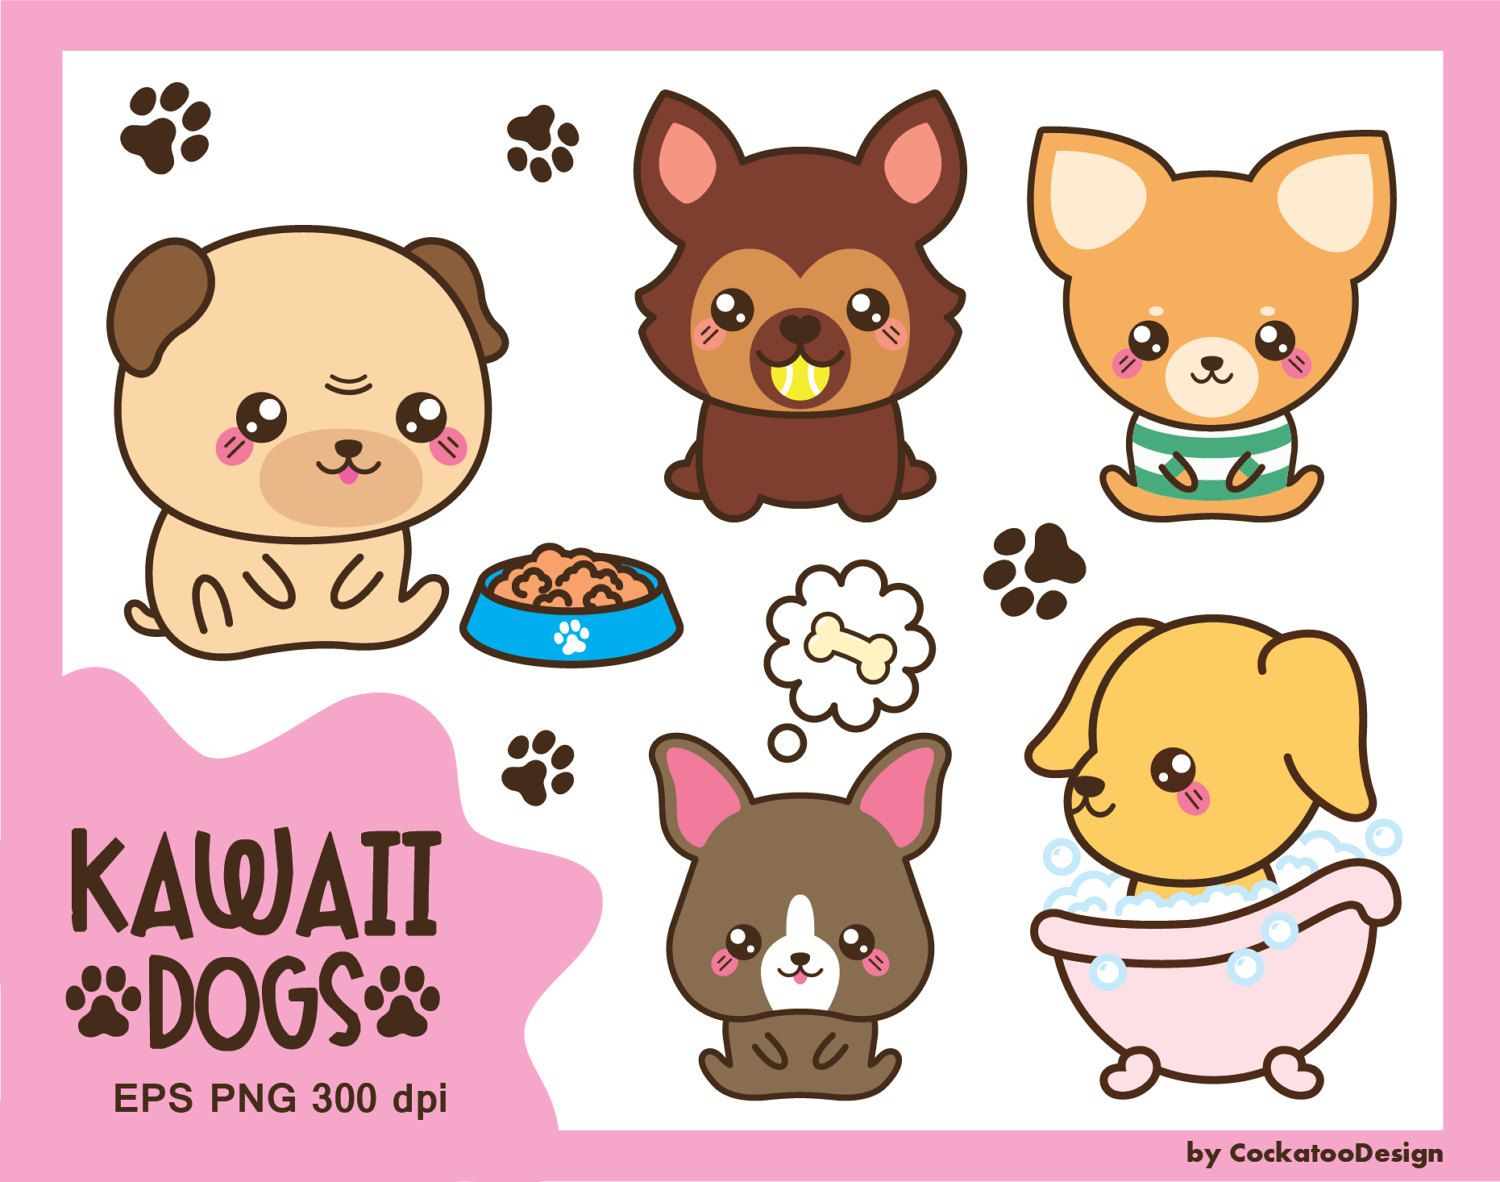 hight resolution of 50 off sale kawaii dog clipart cute dog clipart dog breeds clipart puppy clipart pug clipart boston terrier clipart commercial use by cockatoodesign